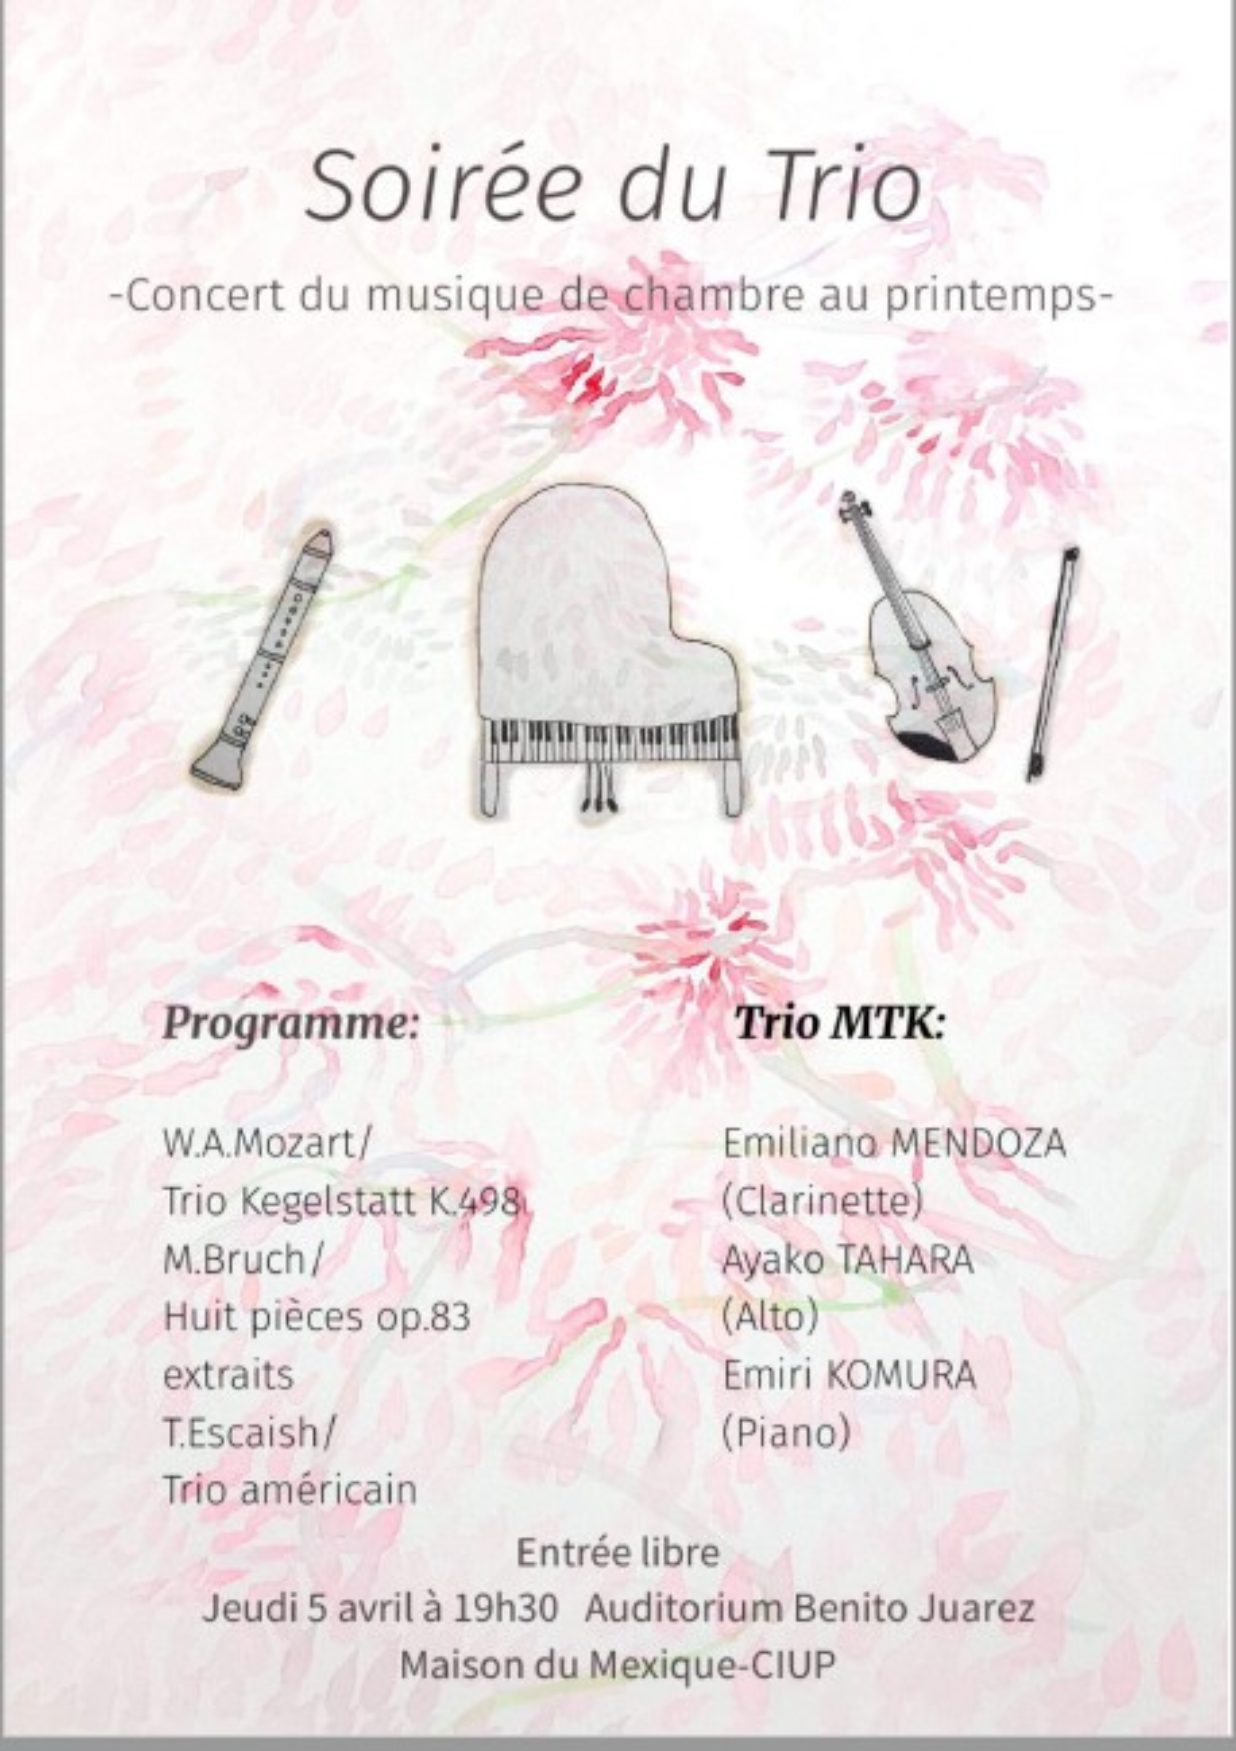 Soiree Trio - 5 avril